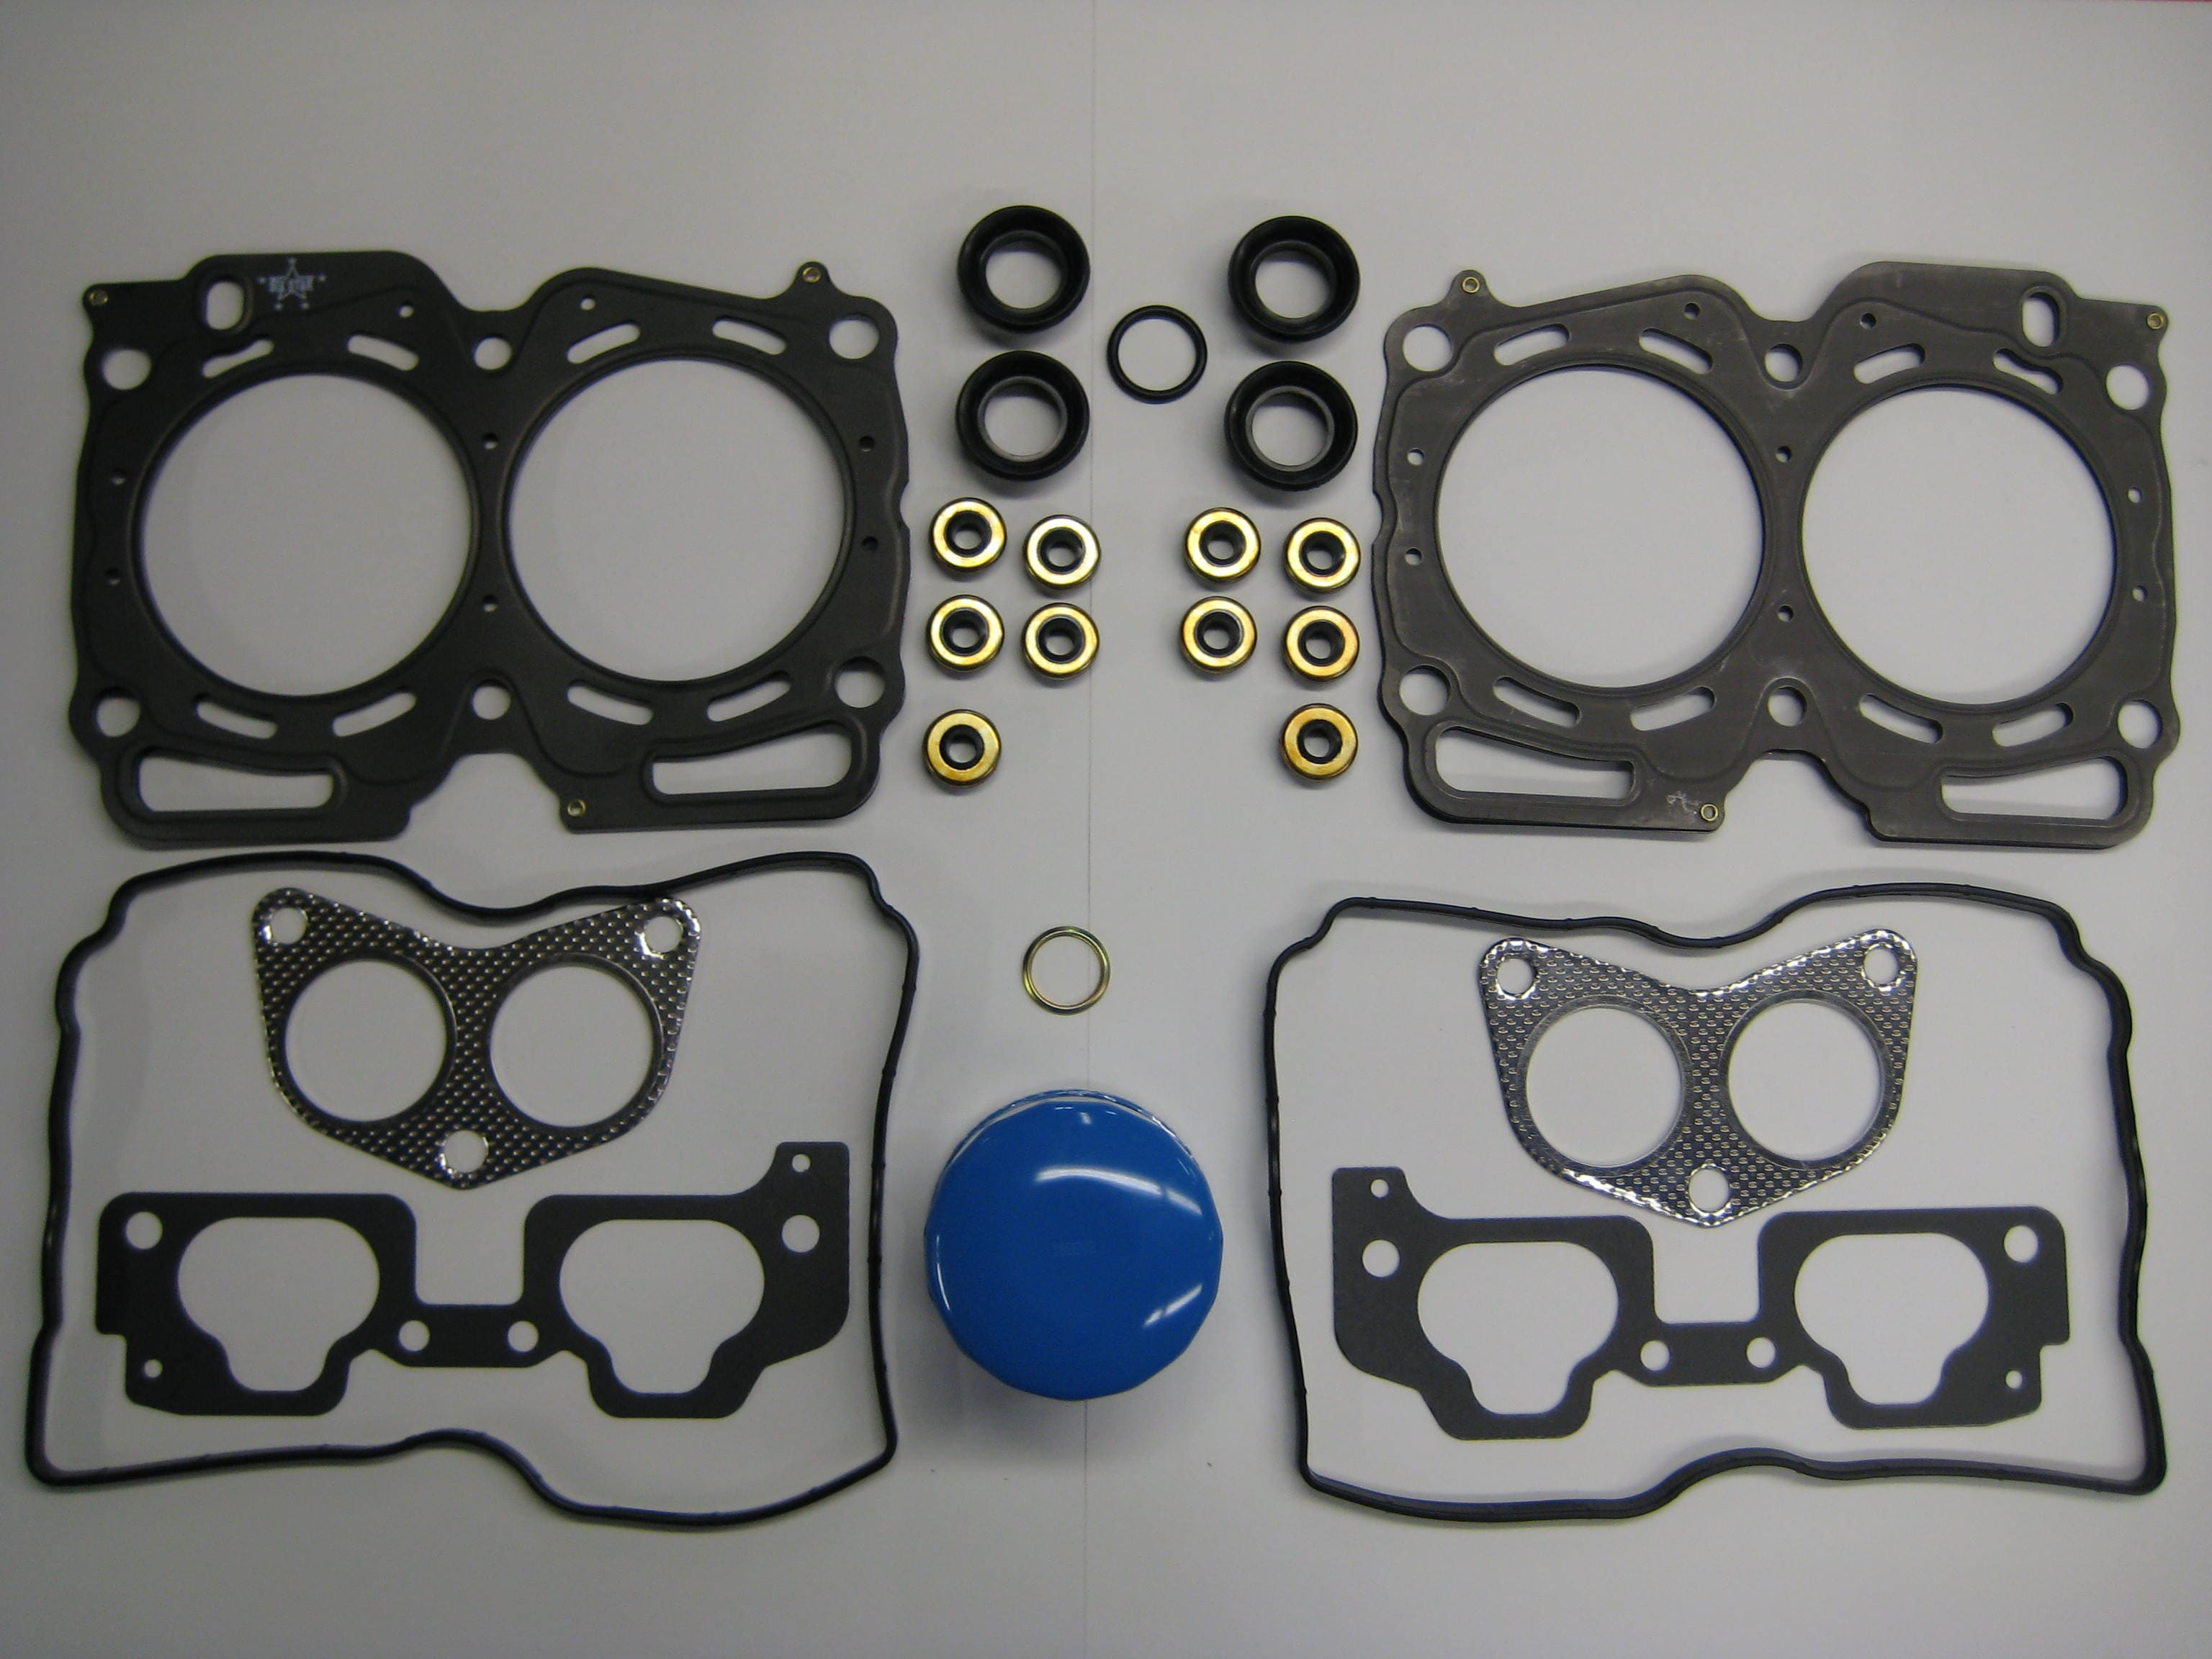 Six Star Head Gasket Kit for Subaru 2.5 SOHC Impreza Forester Outback Legacy